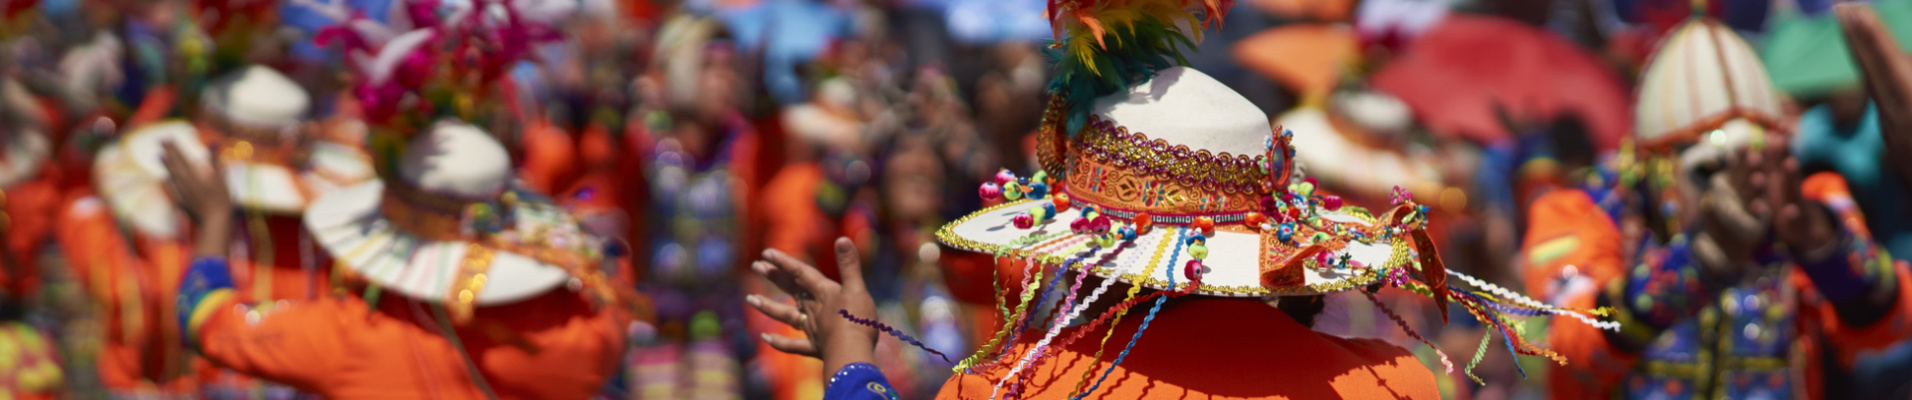 Carnaval Andin, Arica, Chile